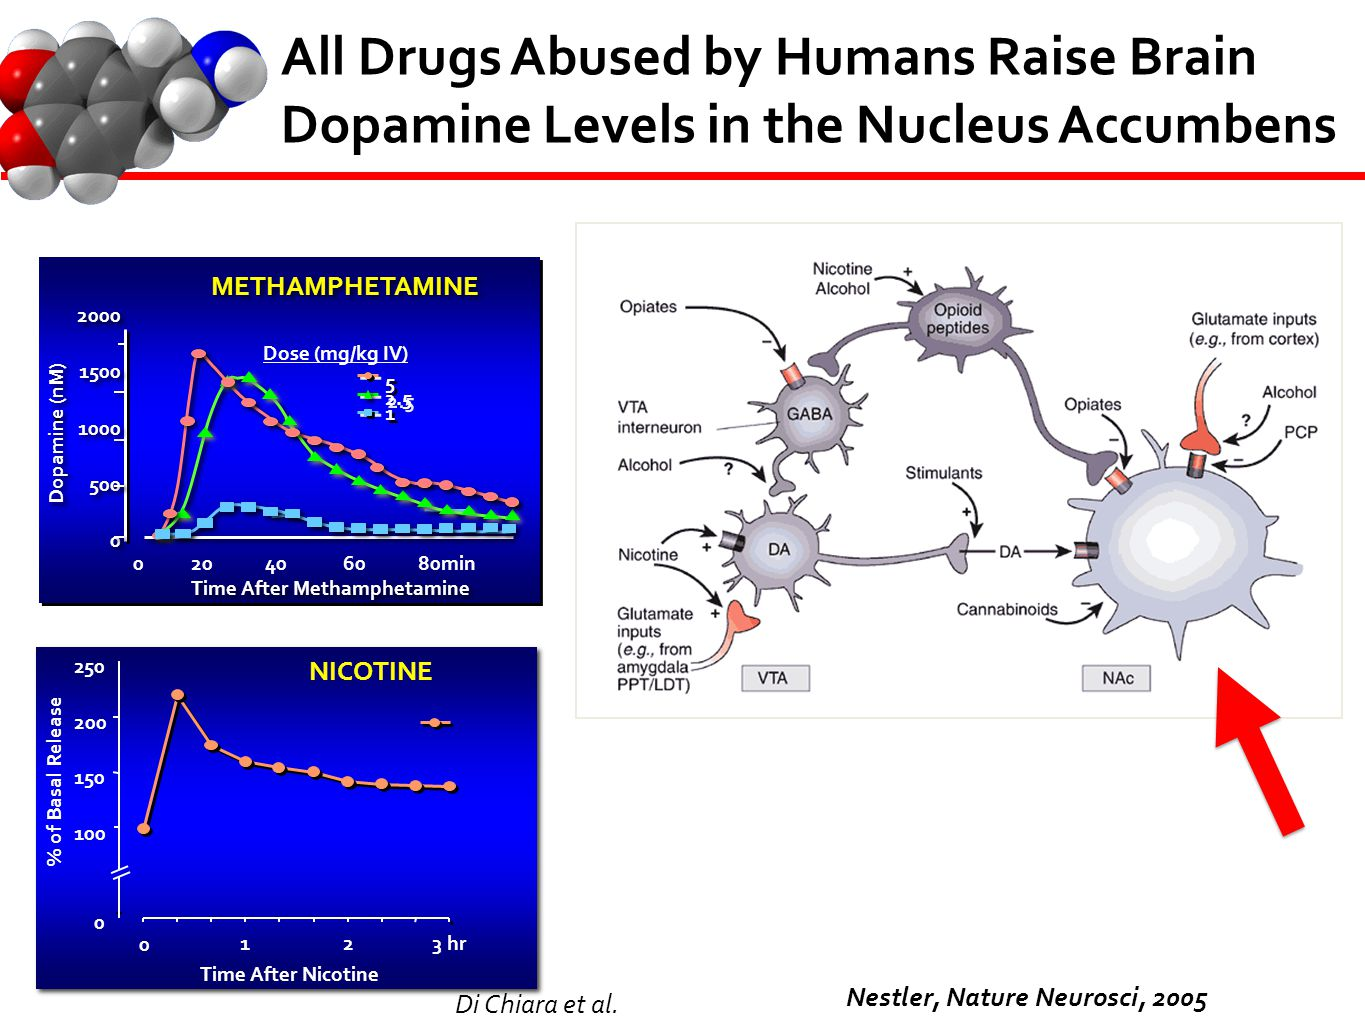 All Drugs Abused by Humans Raise Brain Dopamine Levels in the Nucleus Accumbens